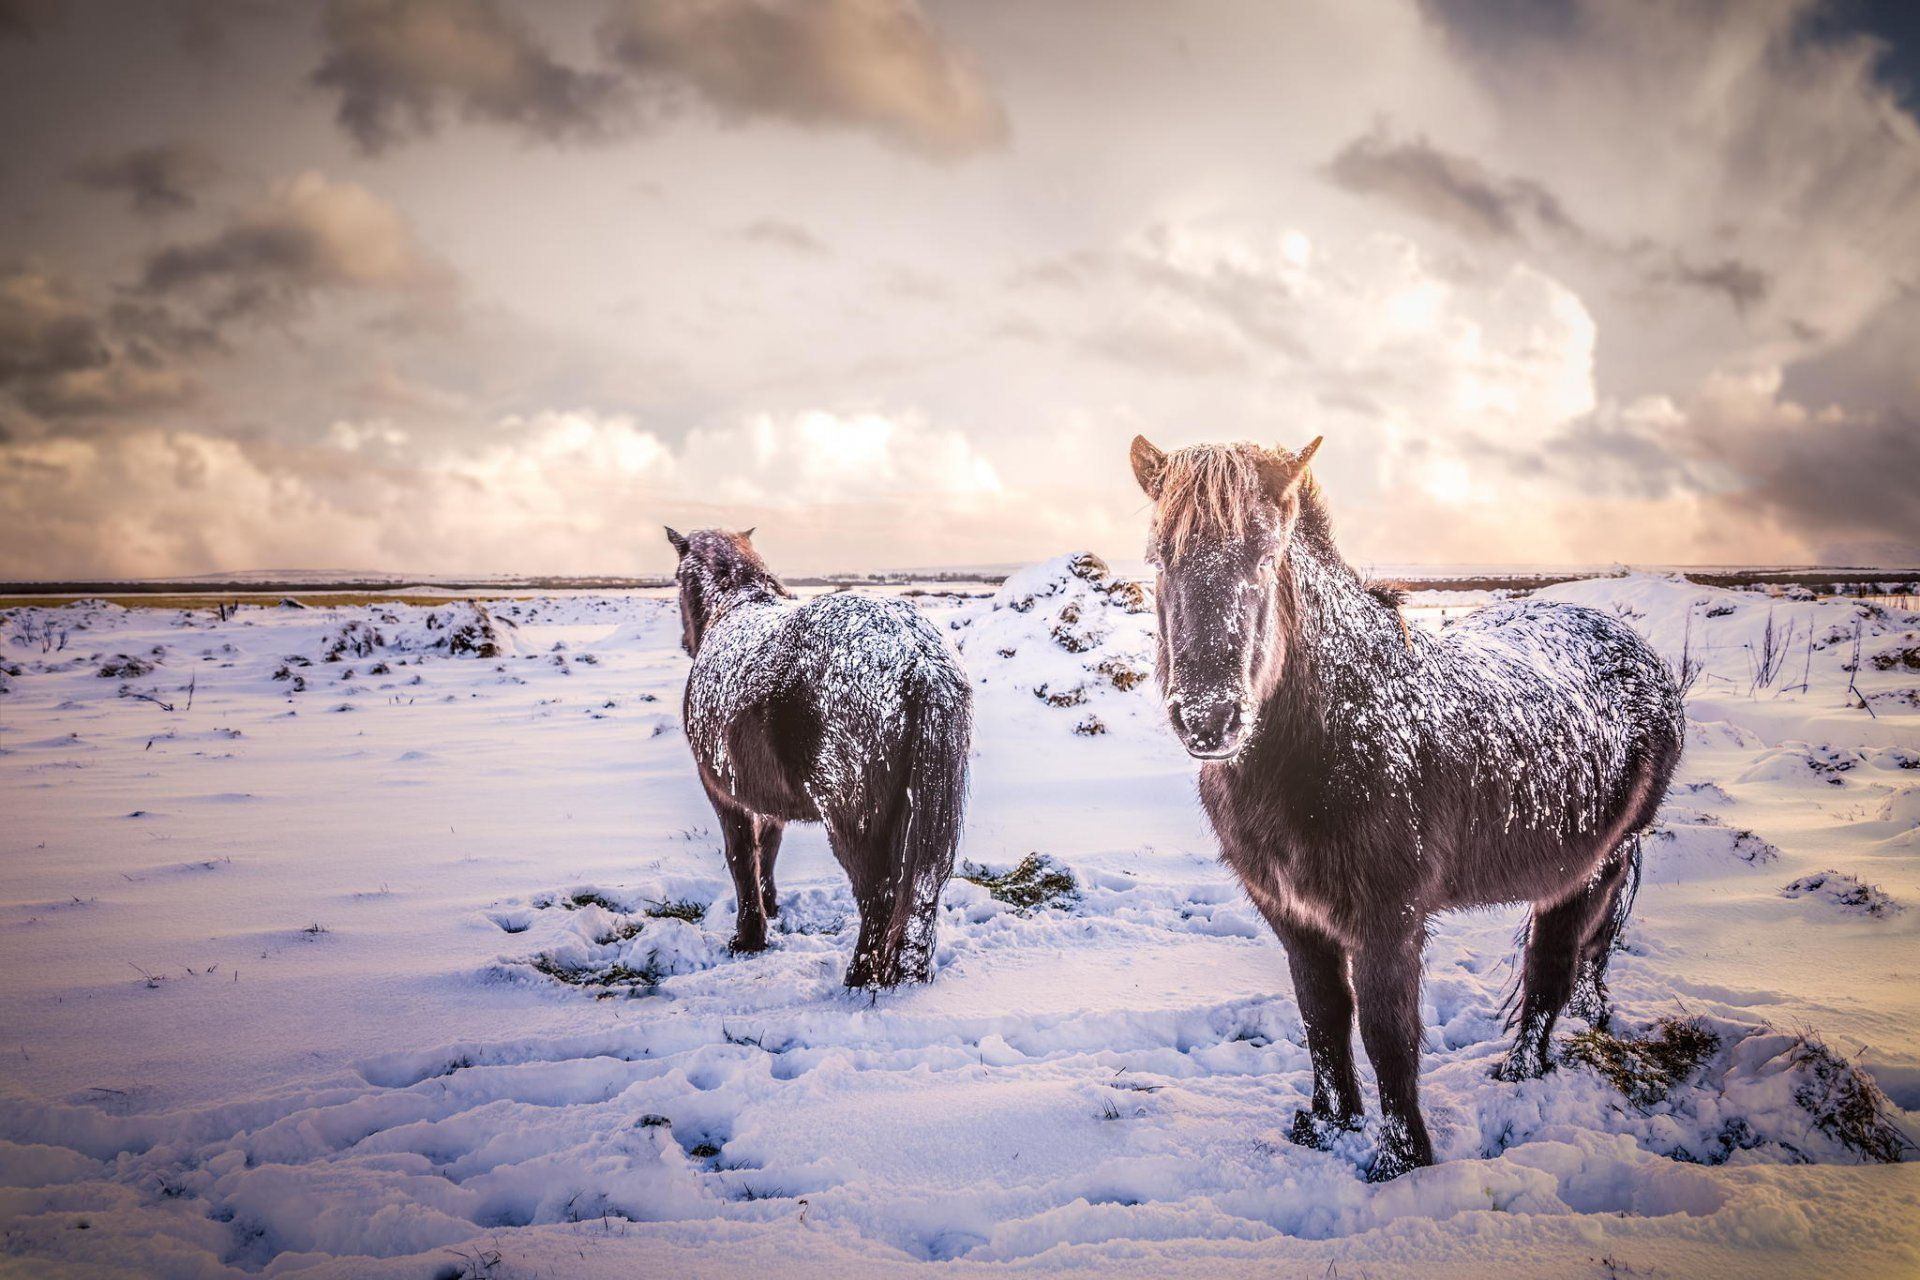 Simple Wallpaper Horse Winter - 843e3de34a97664e8d5d15922d269052  Pictures_93628.jpg